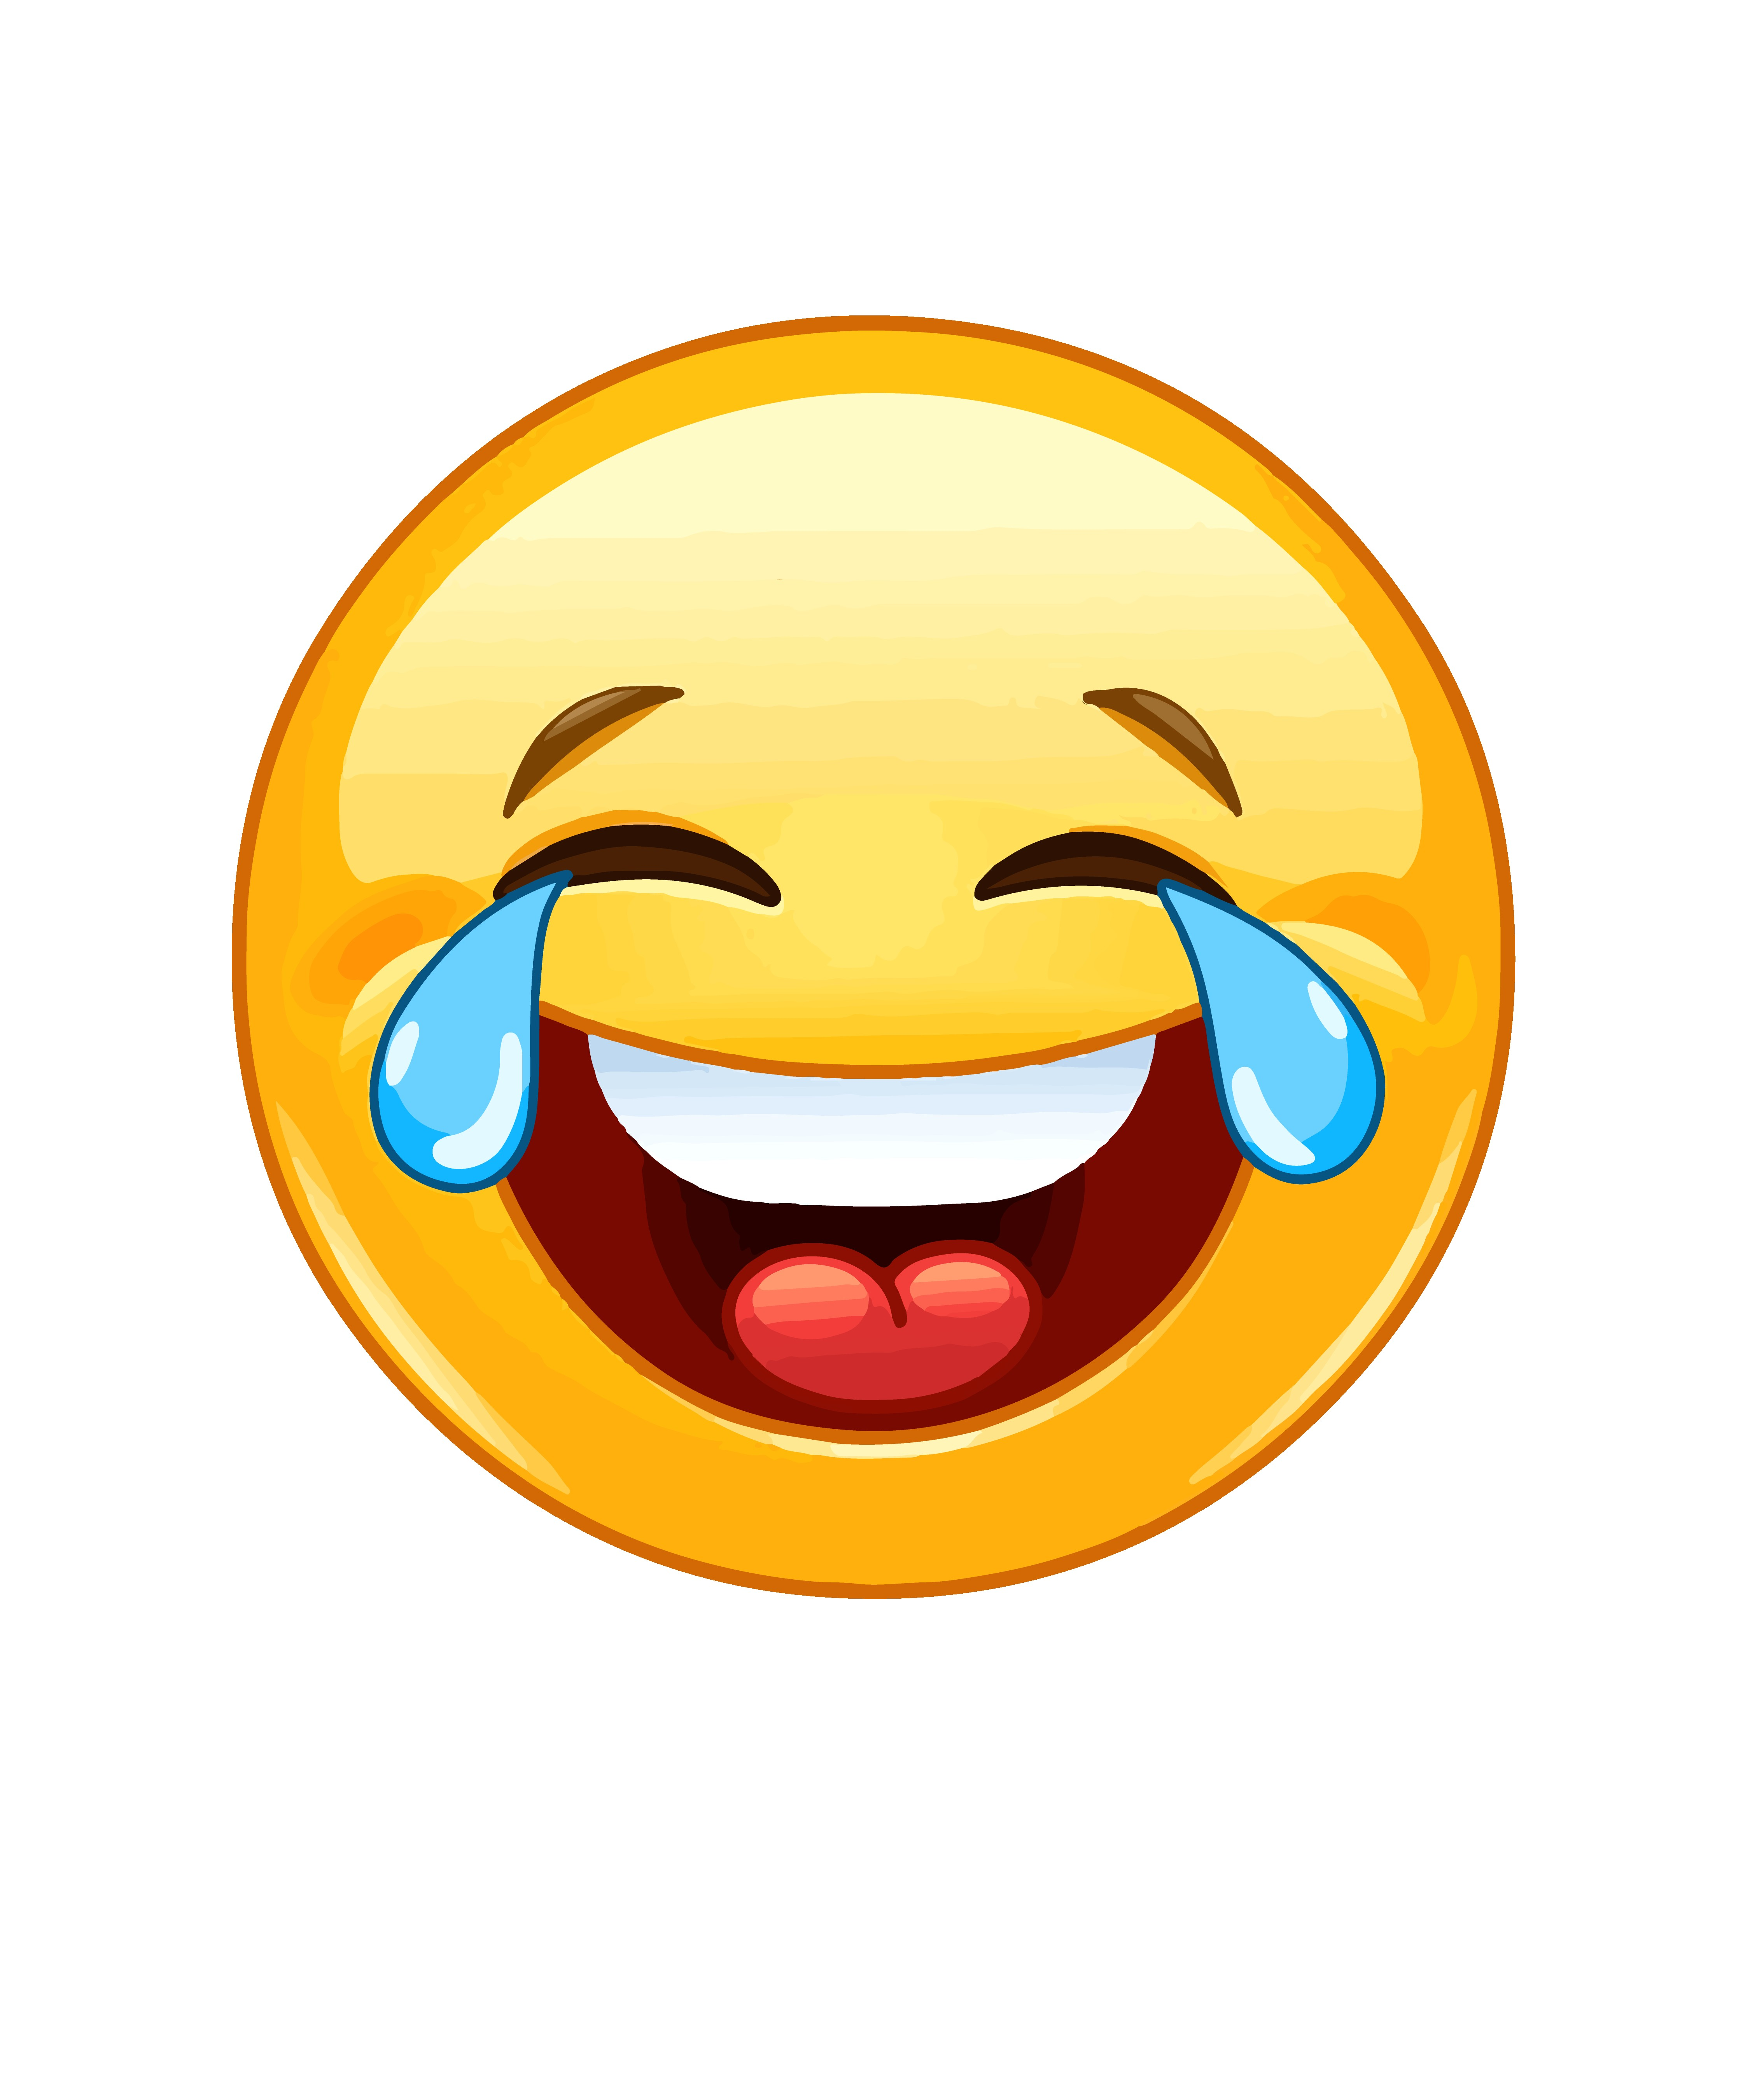 Laughing Face Emoji Png (101+ images in Collection) Page 3.